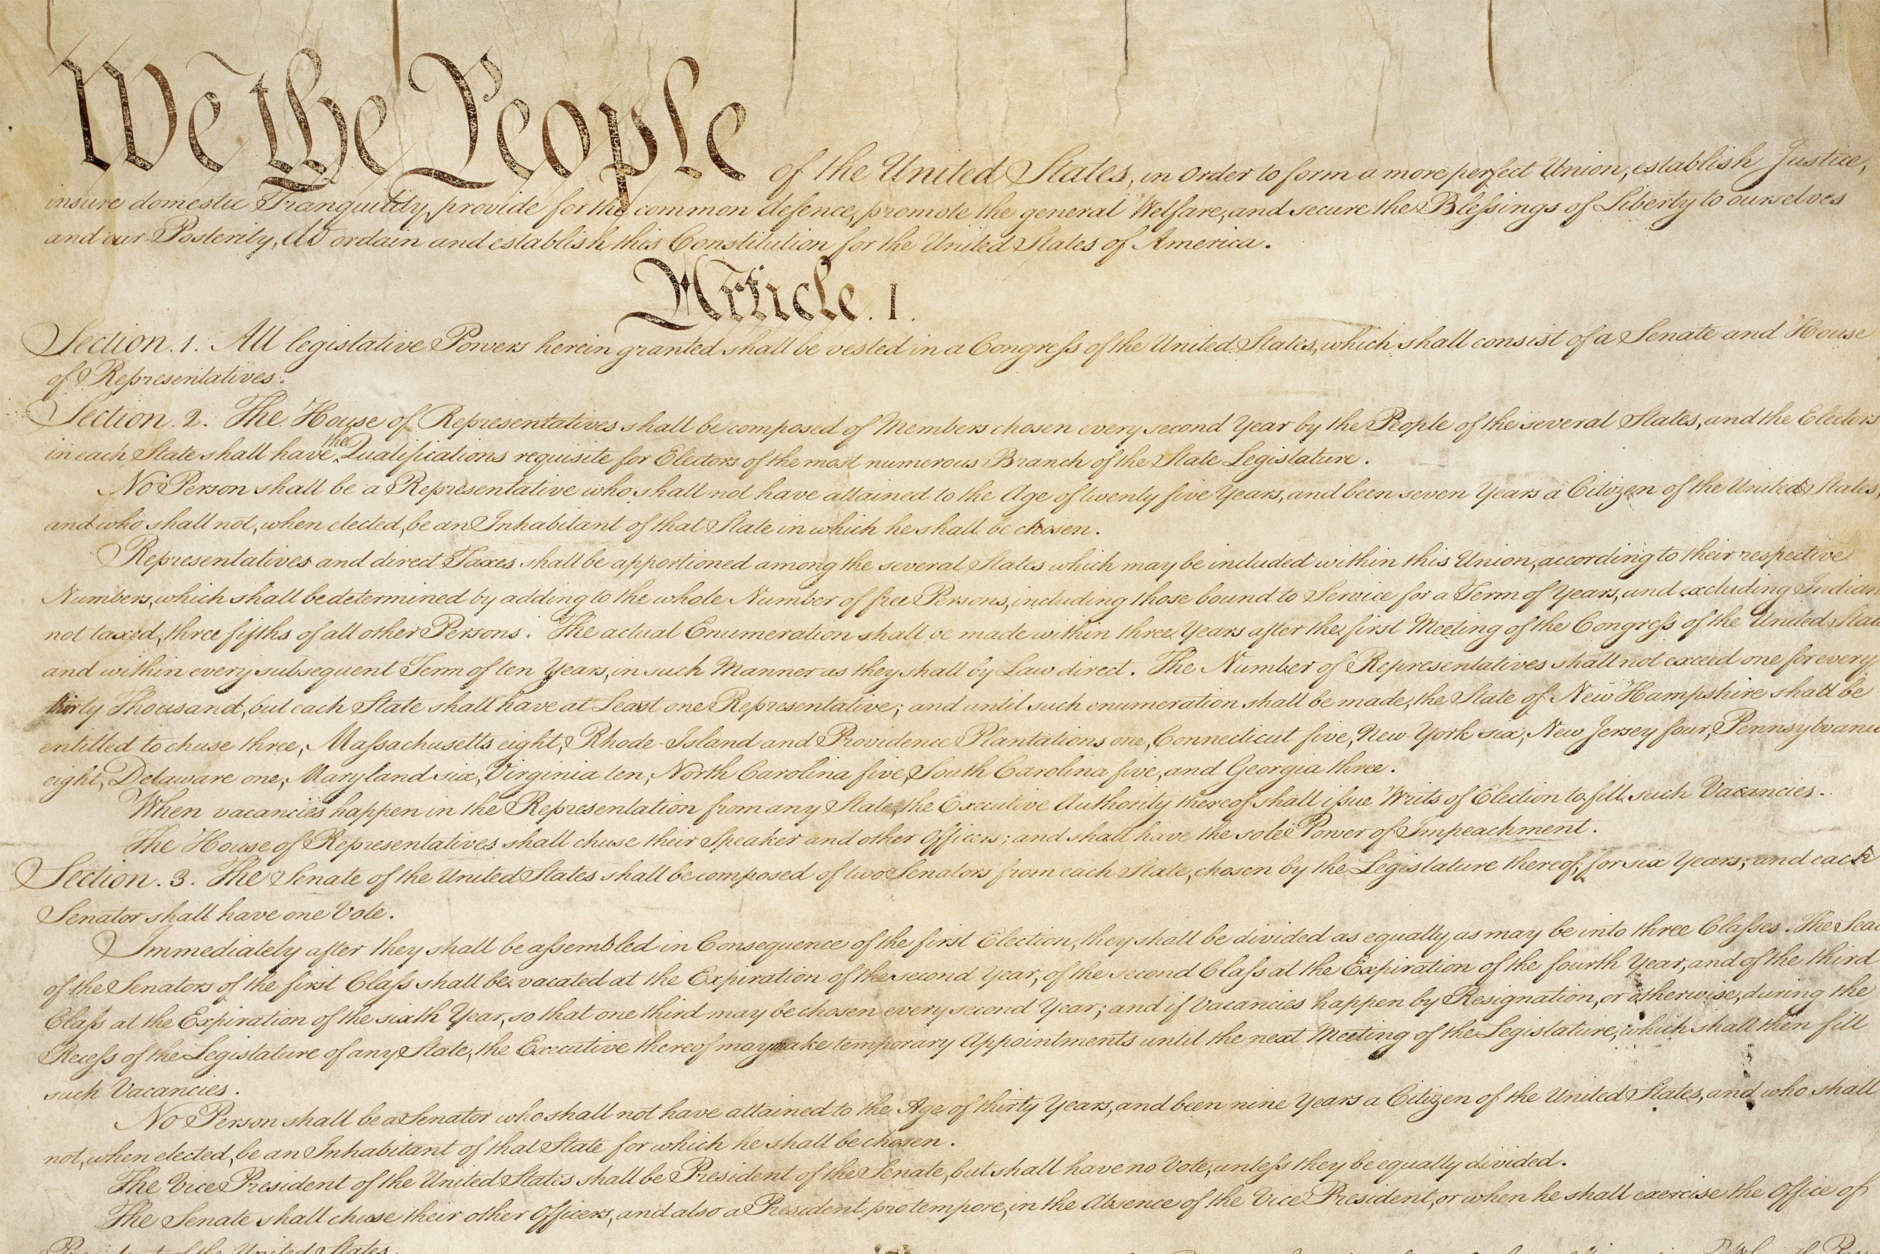 This photo made available by the U.S. National Archives shows a portion of the first page of the United States Constitution. (National Archives via AP)